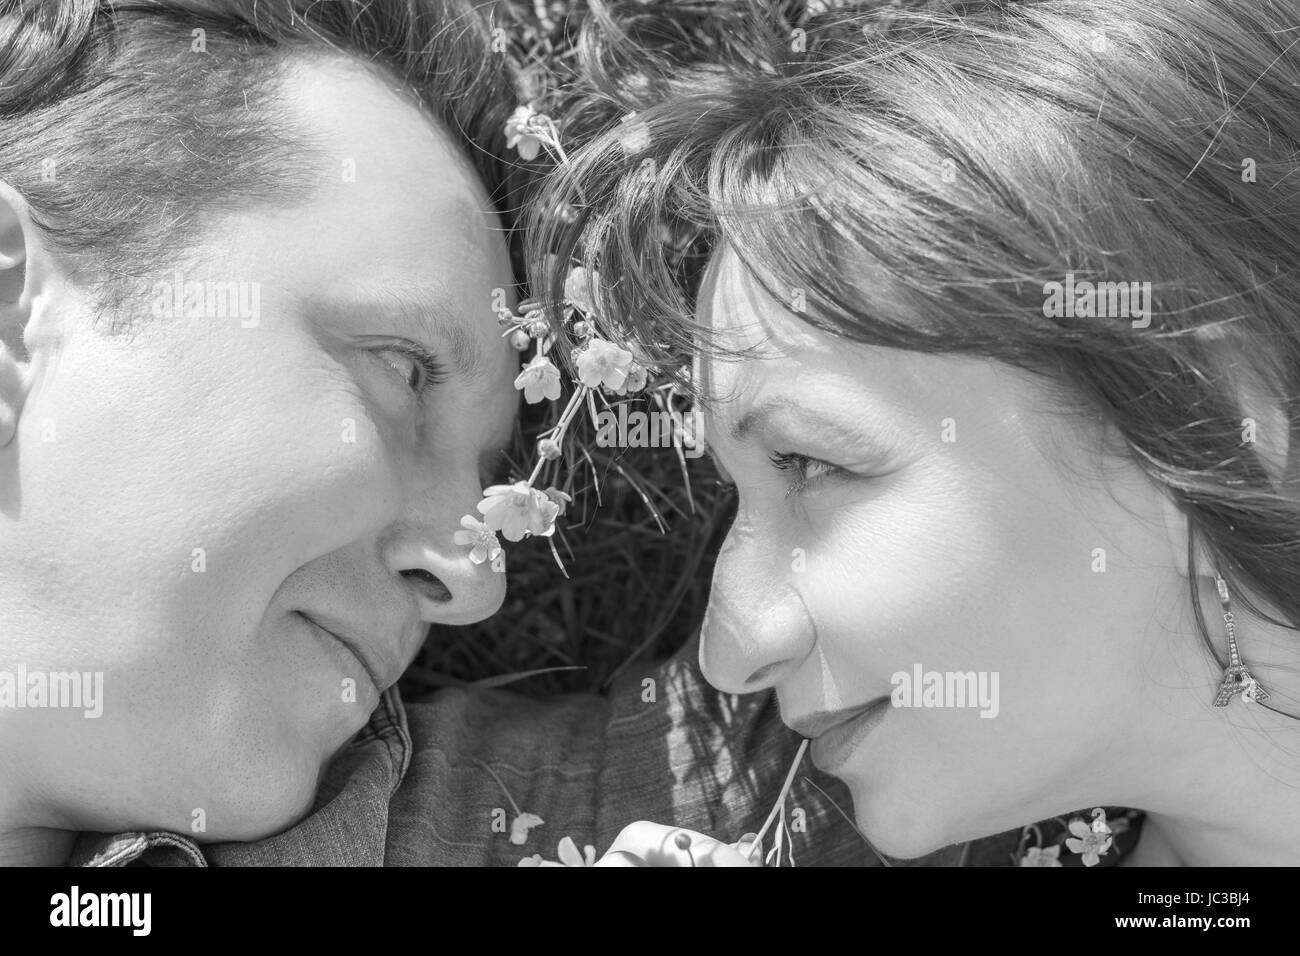 Affectionate young couple looking at each other in park. Love story. Black and white. - Stock Image